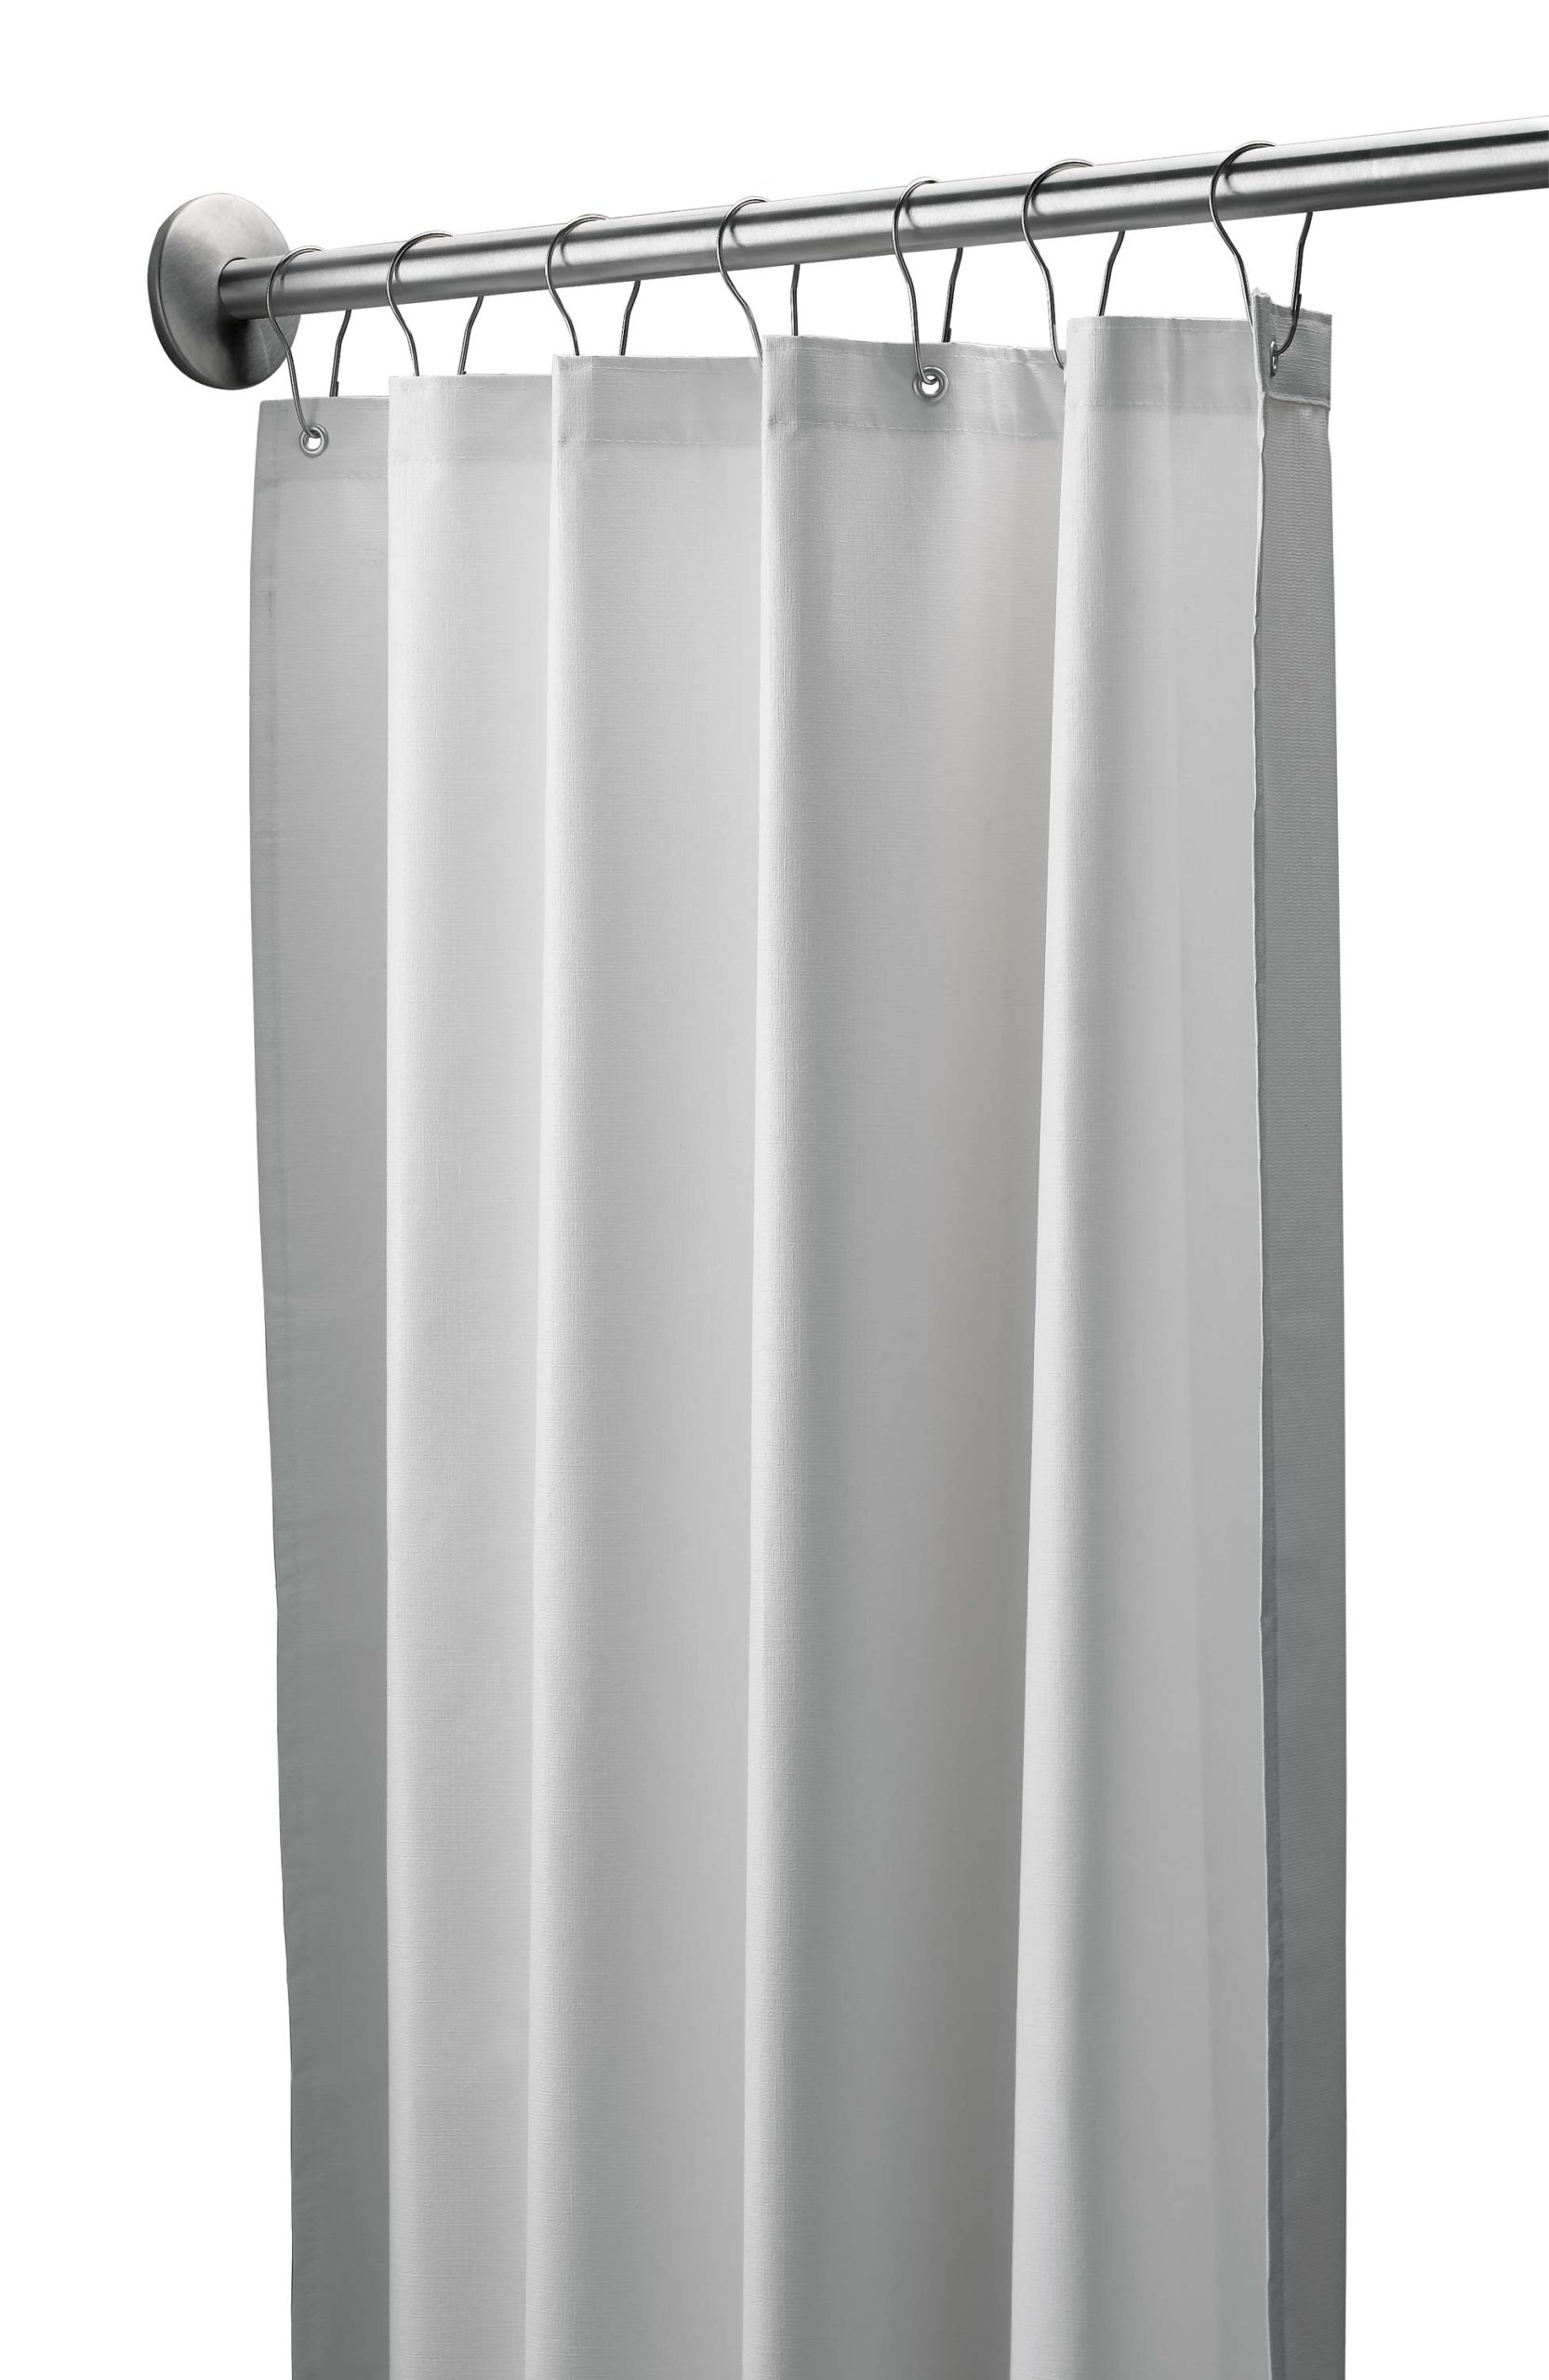 "Bradley 9533-7272 White Antimicrobial Vinyl Shower Curtain 72"" x 72"""